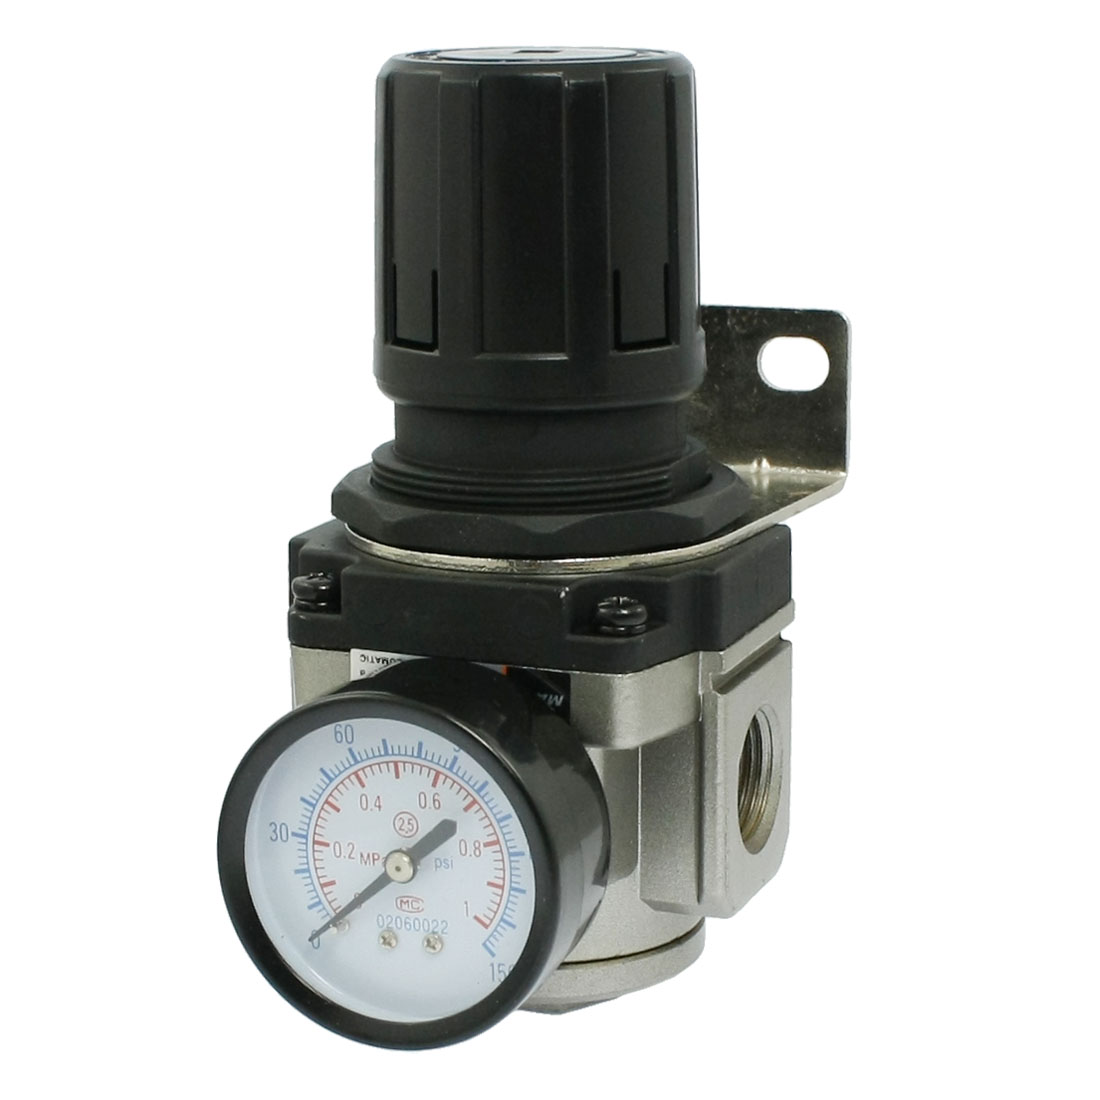 0-1Mpa Pneumatic Air Source Filter Treatment Pneumatic Regulator 1/2""